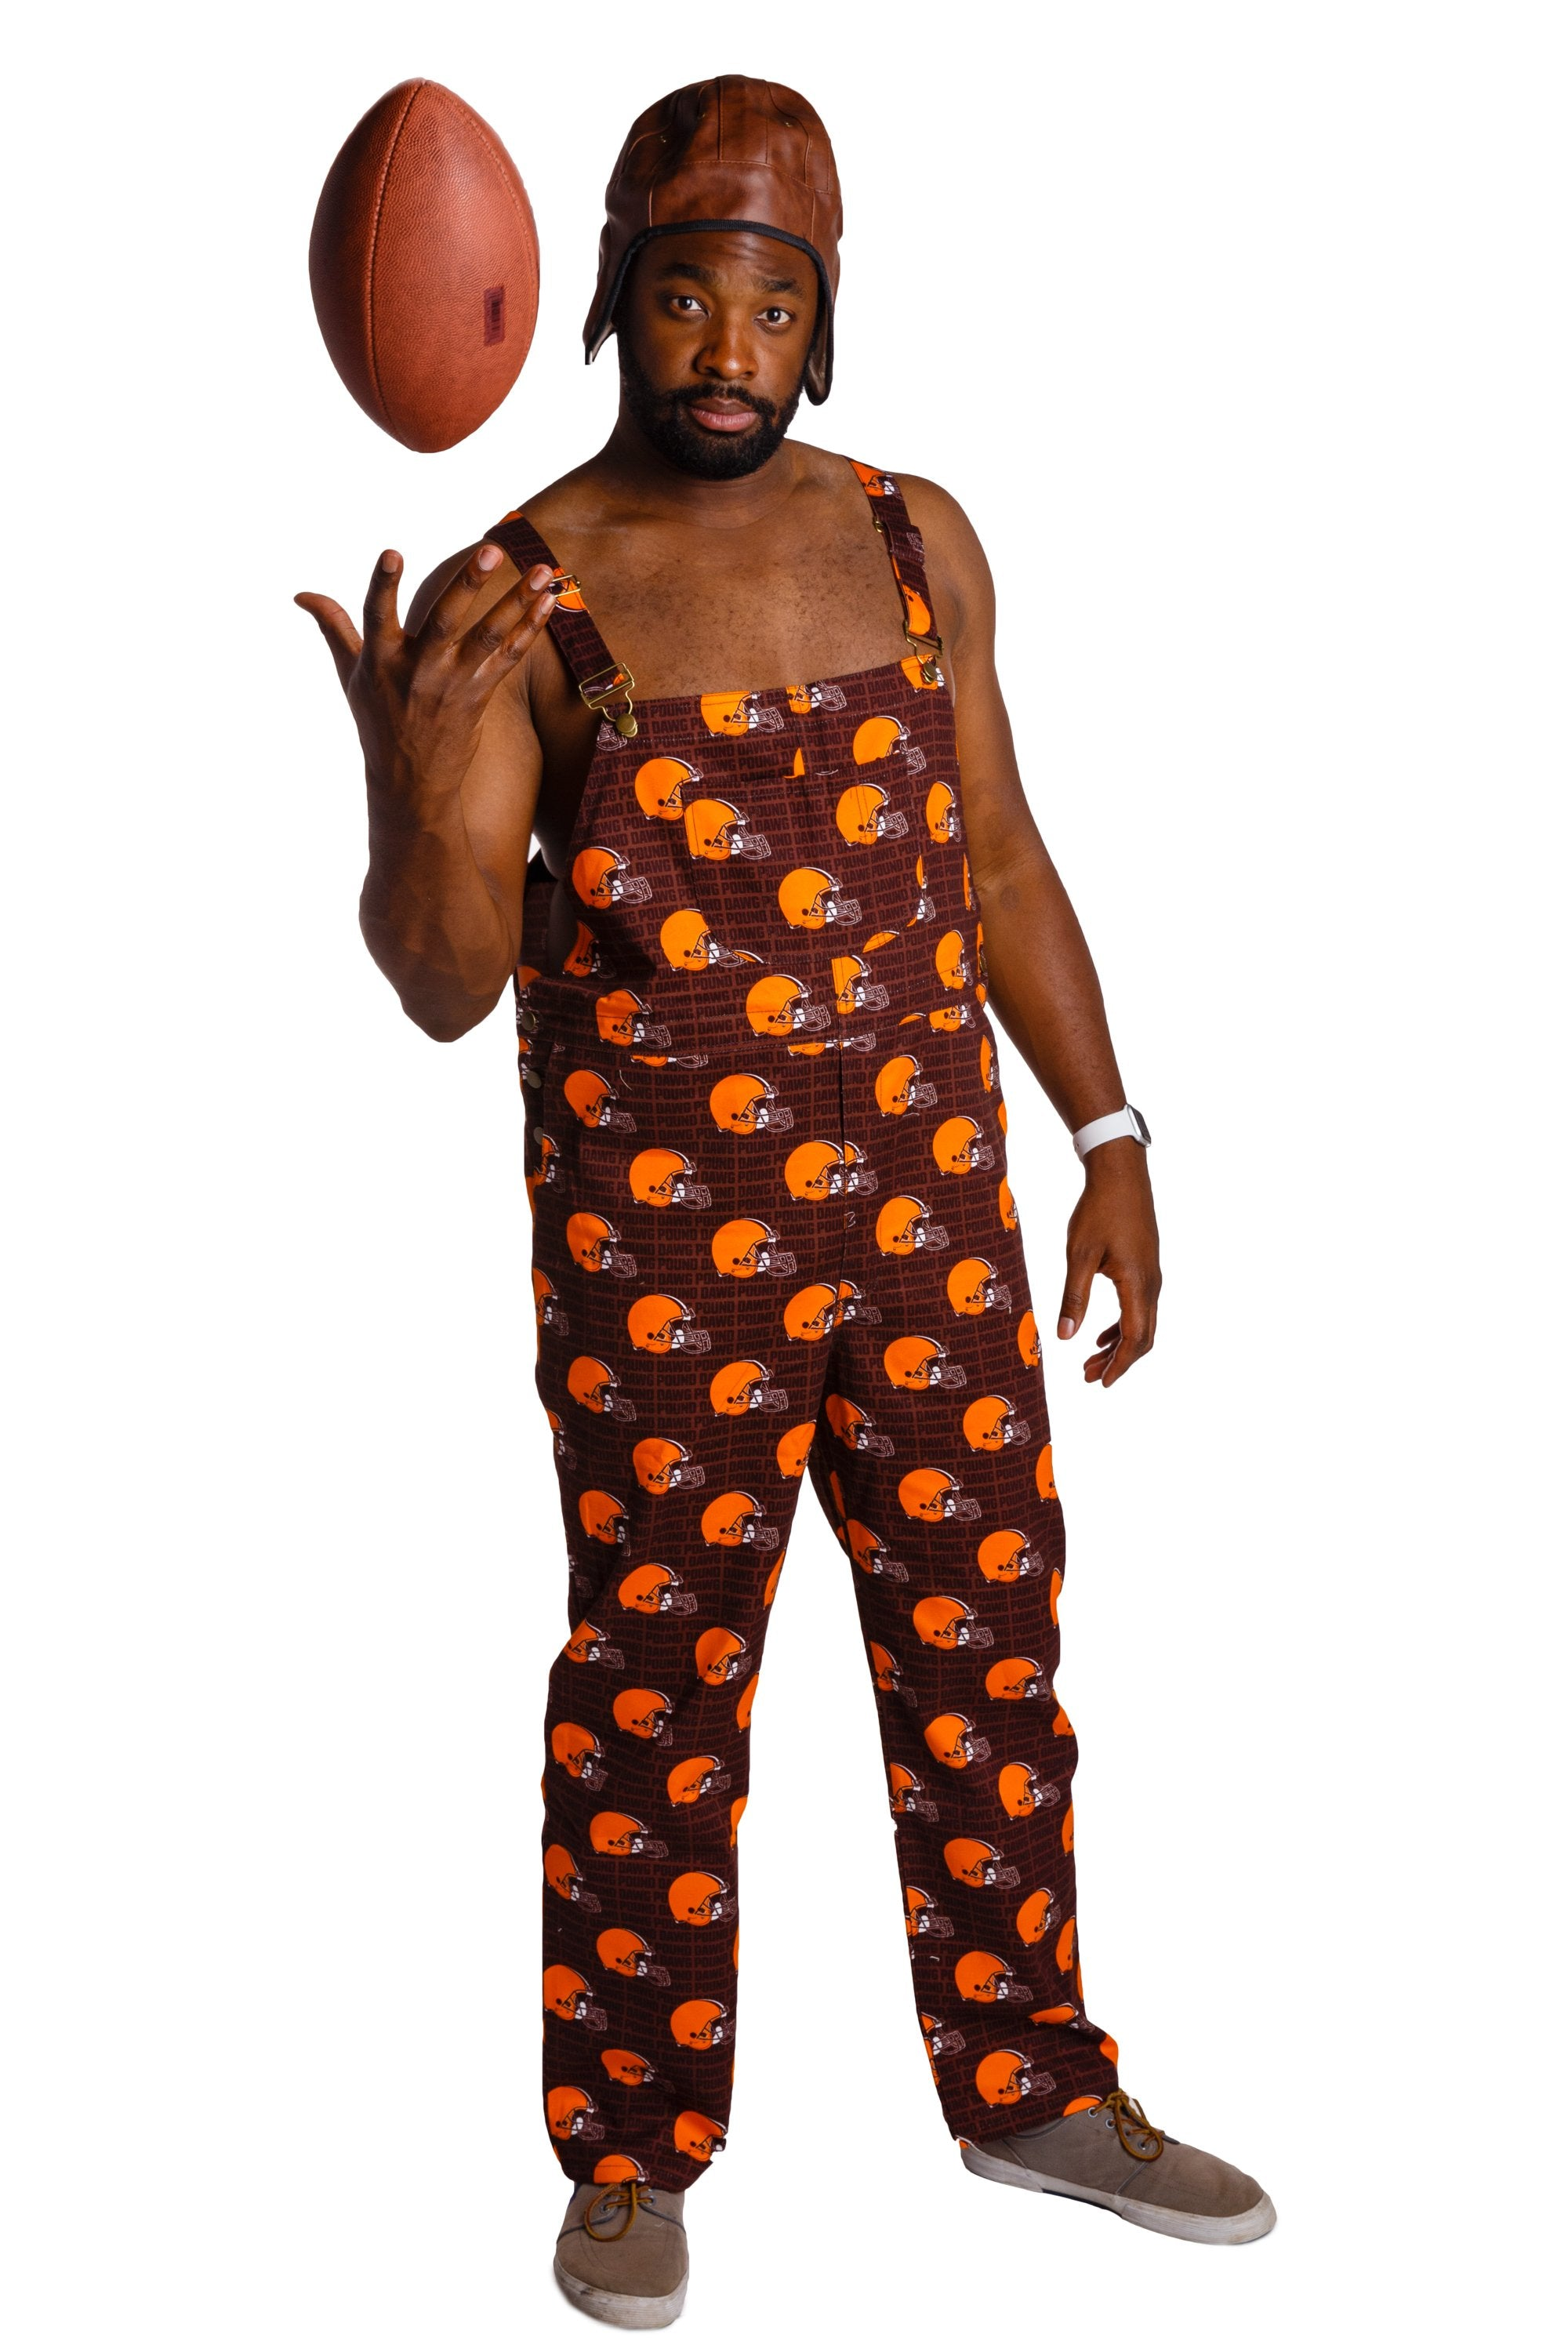 Cleveland Browns men's gameday overalls